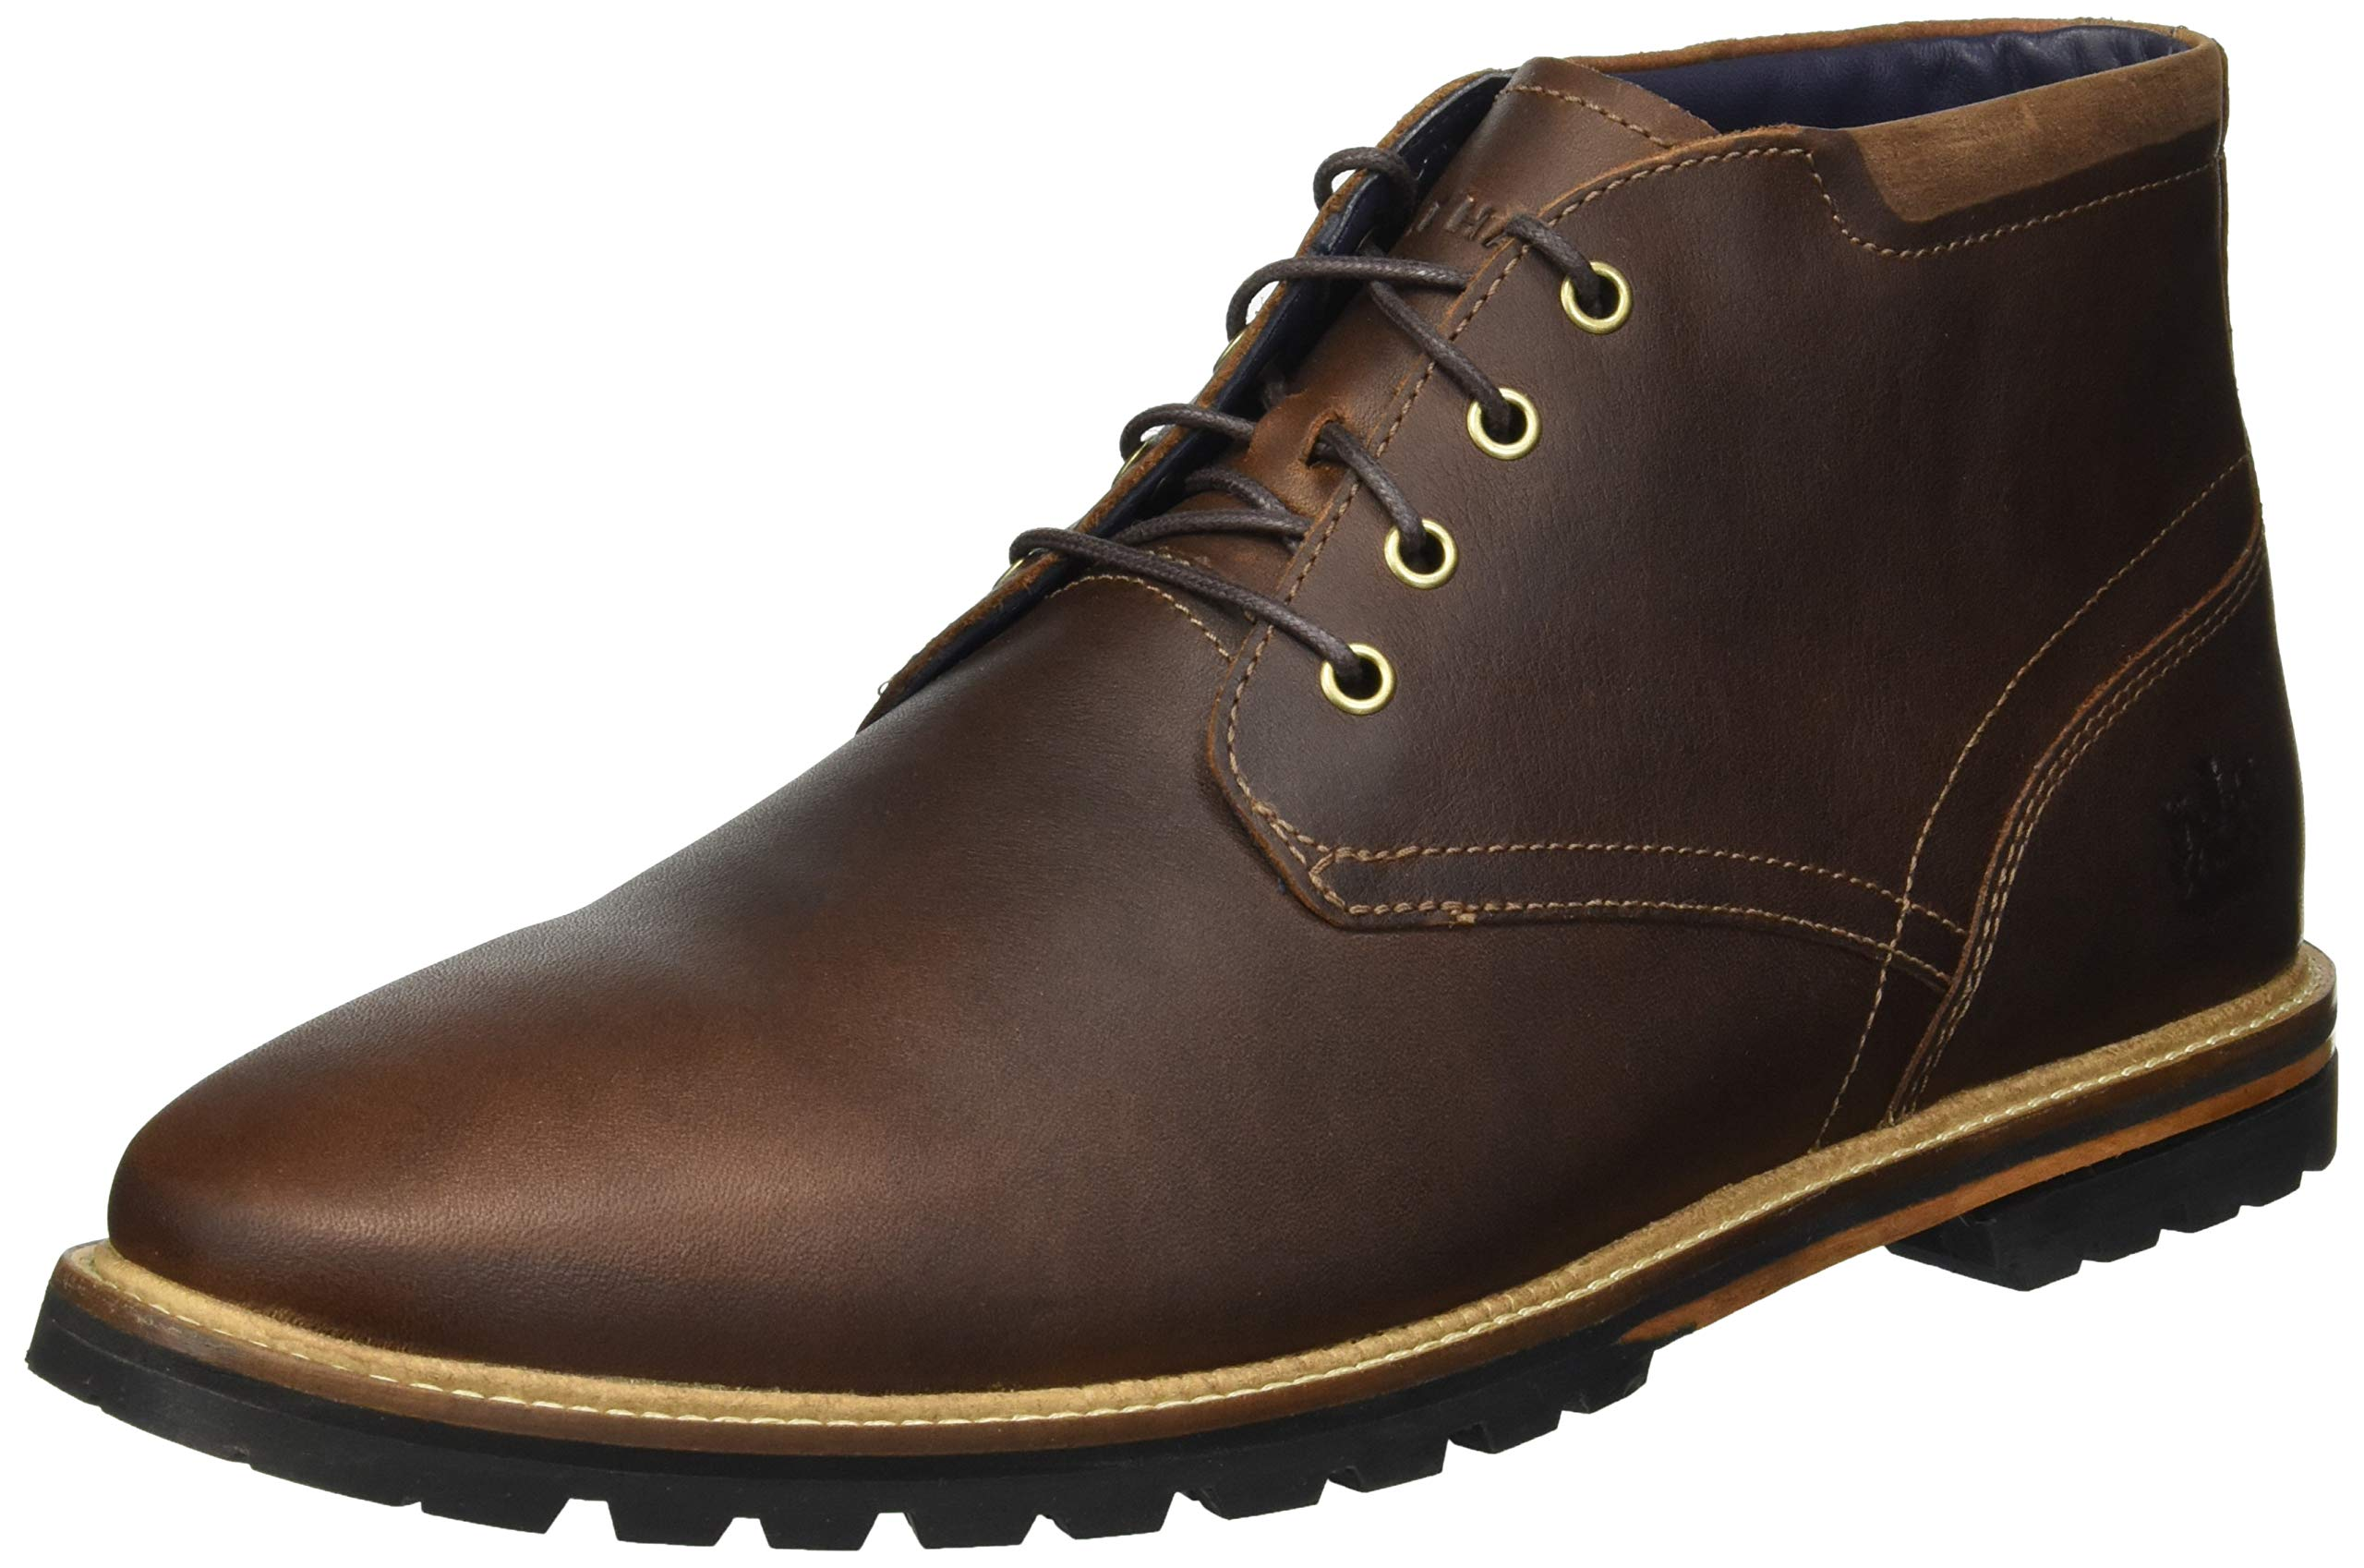 Cole Haan Men's Ripley Grand Chukka Boot Fashion, Cognac 11.5 M US